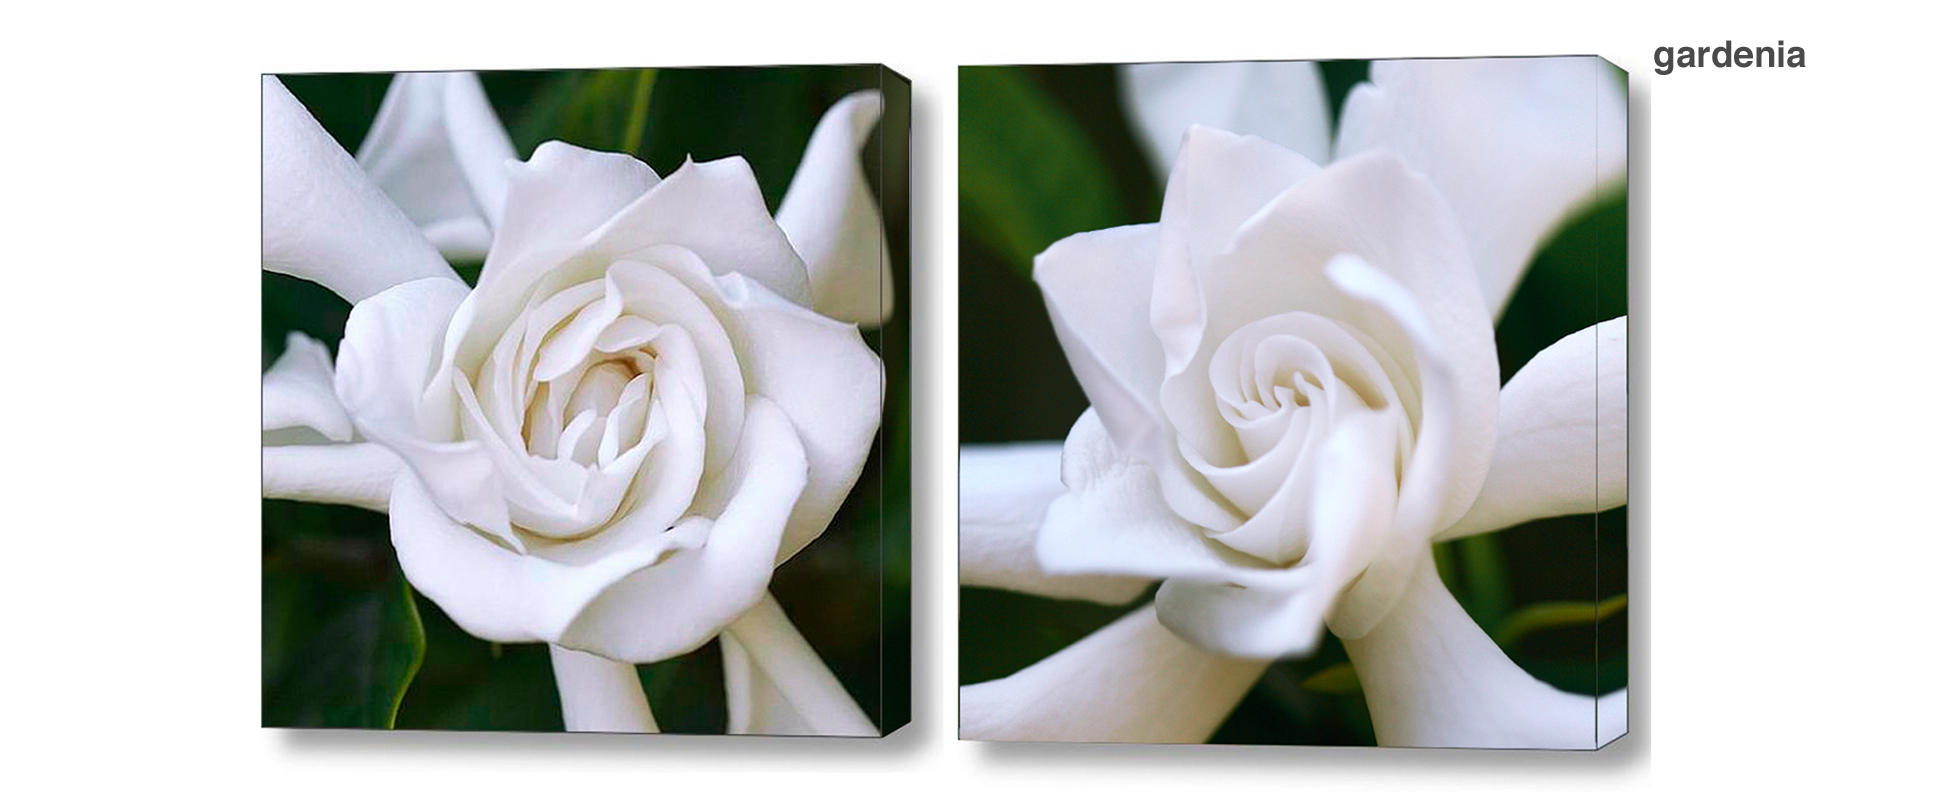 gardenia series - Floral Series Wall Decor Macro Photography Matted & Giclée Canvas Prints